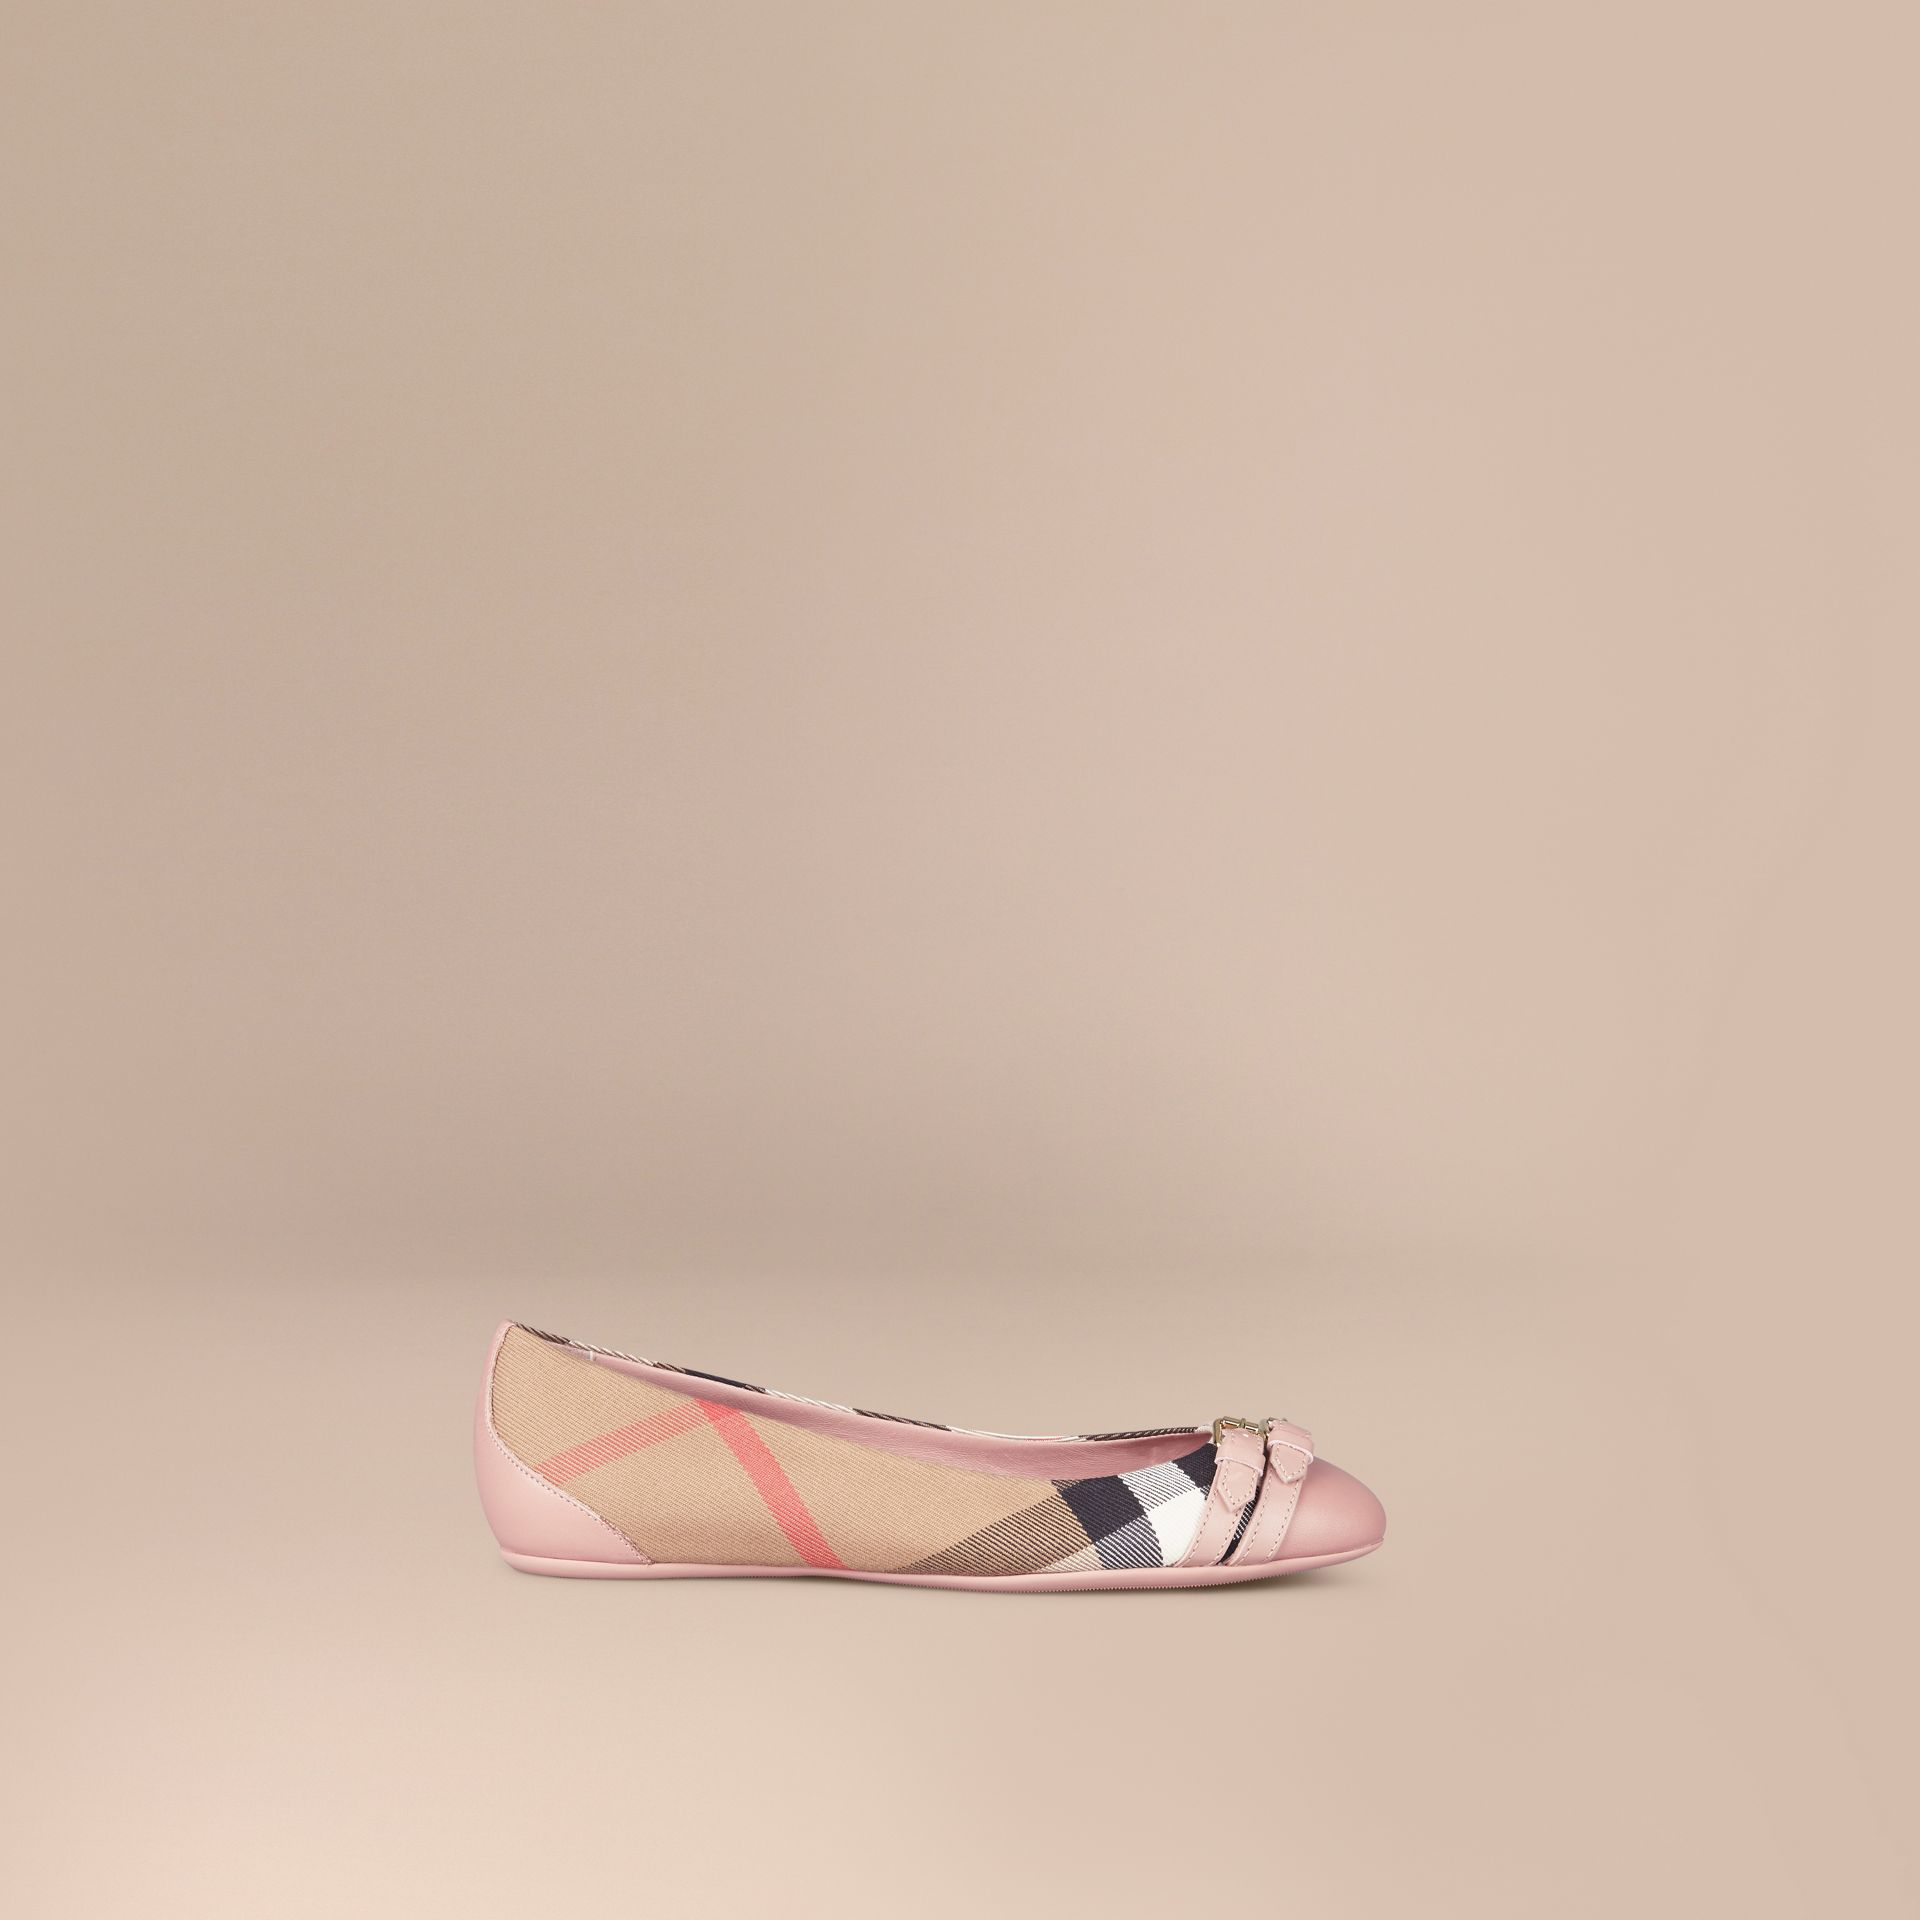 Belt Detail House Check Ballerinas - Women | Burberry - gallery image 1